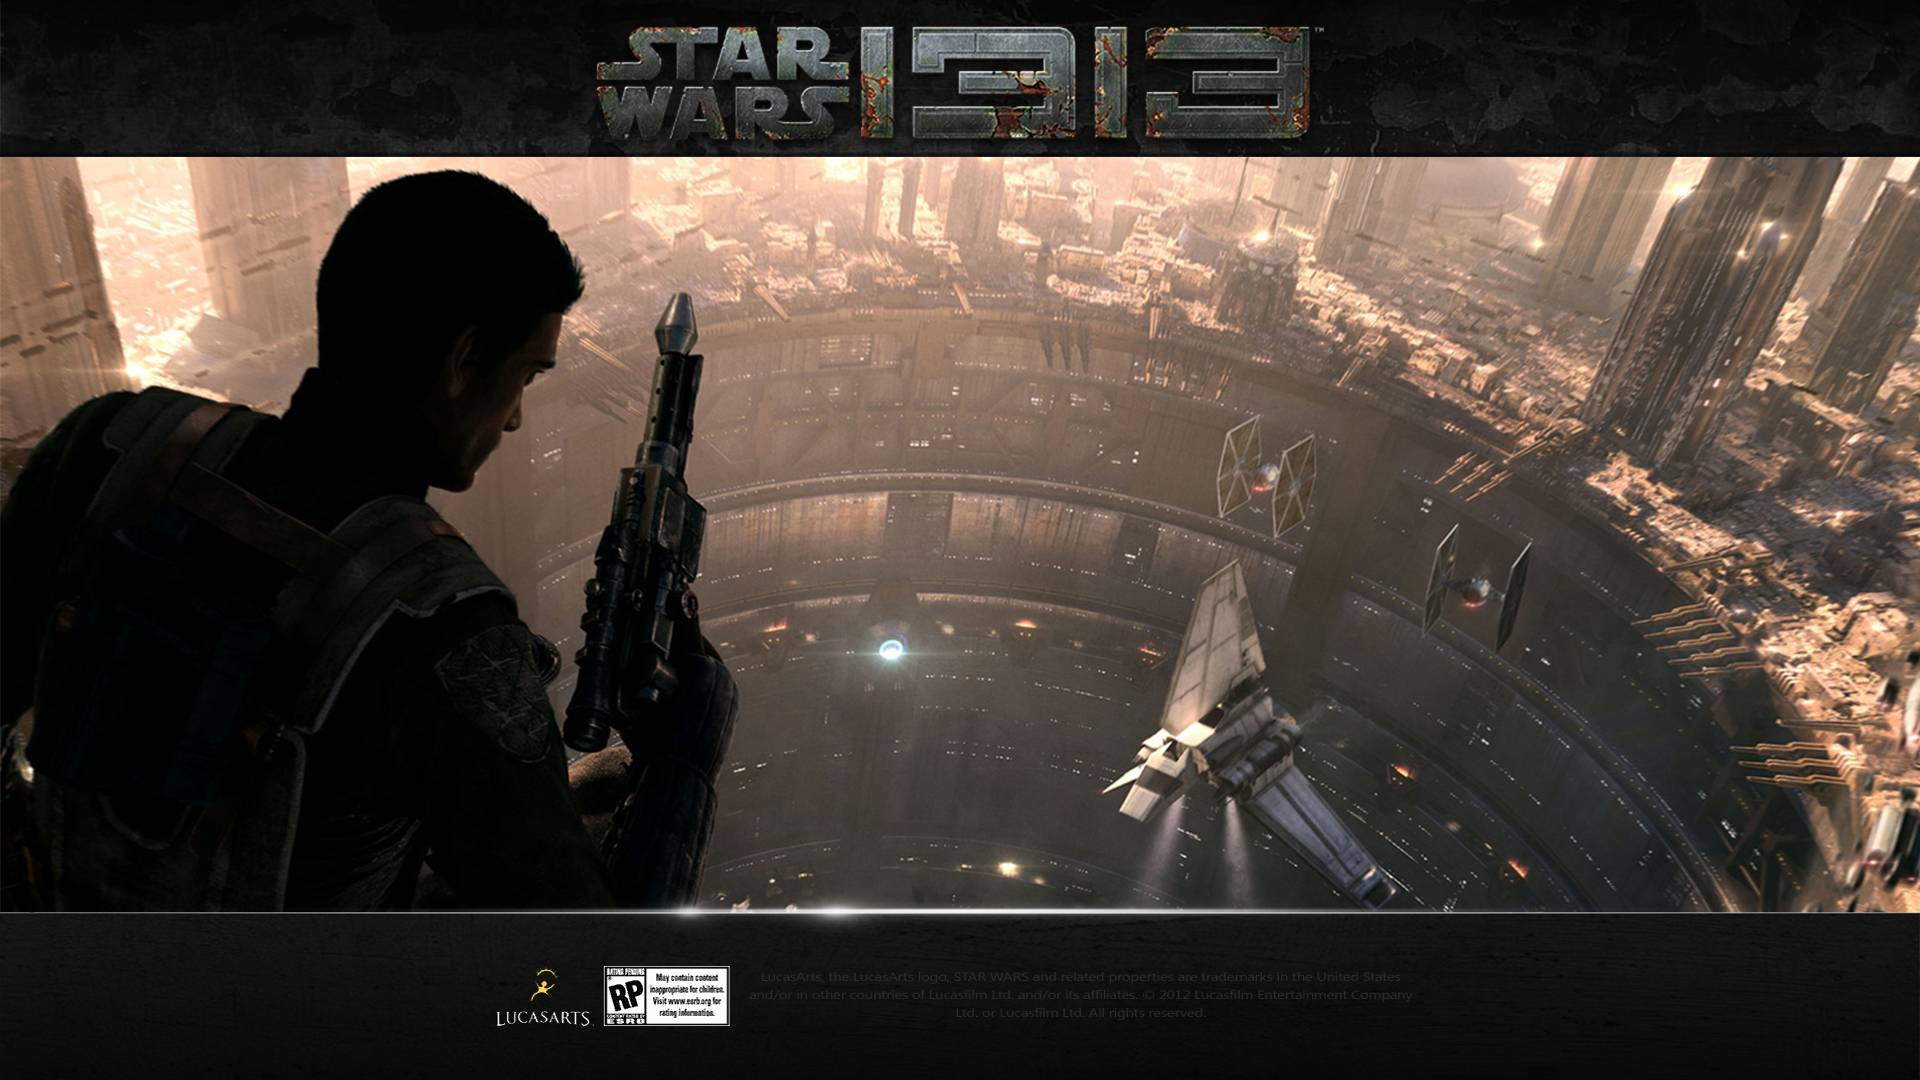 Star Wars 1313 Wallpapers in HD GamingBoltcom Video Game News 1920x1080